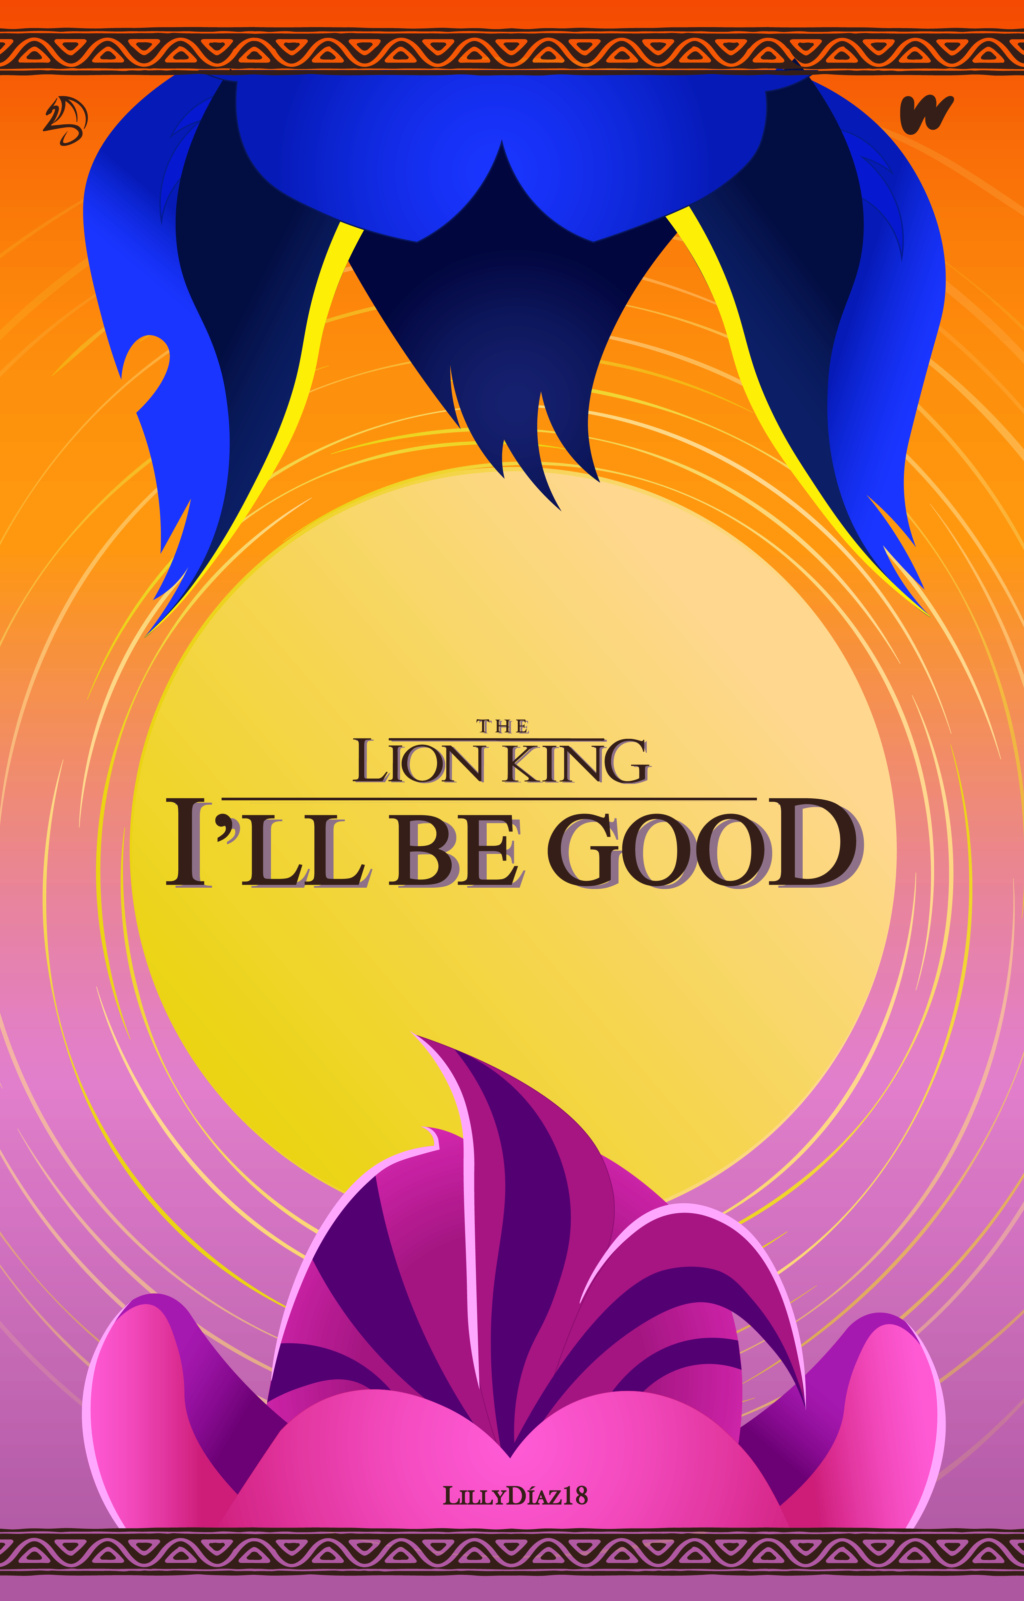 I'll be Good (JanjaxJasiri) Portad10